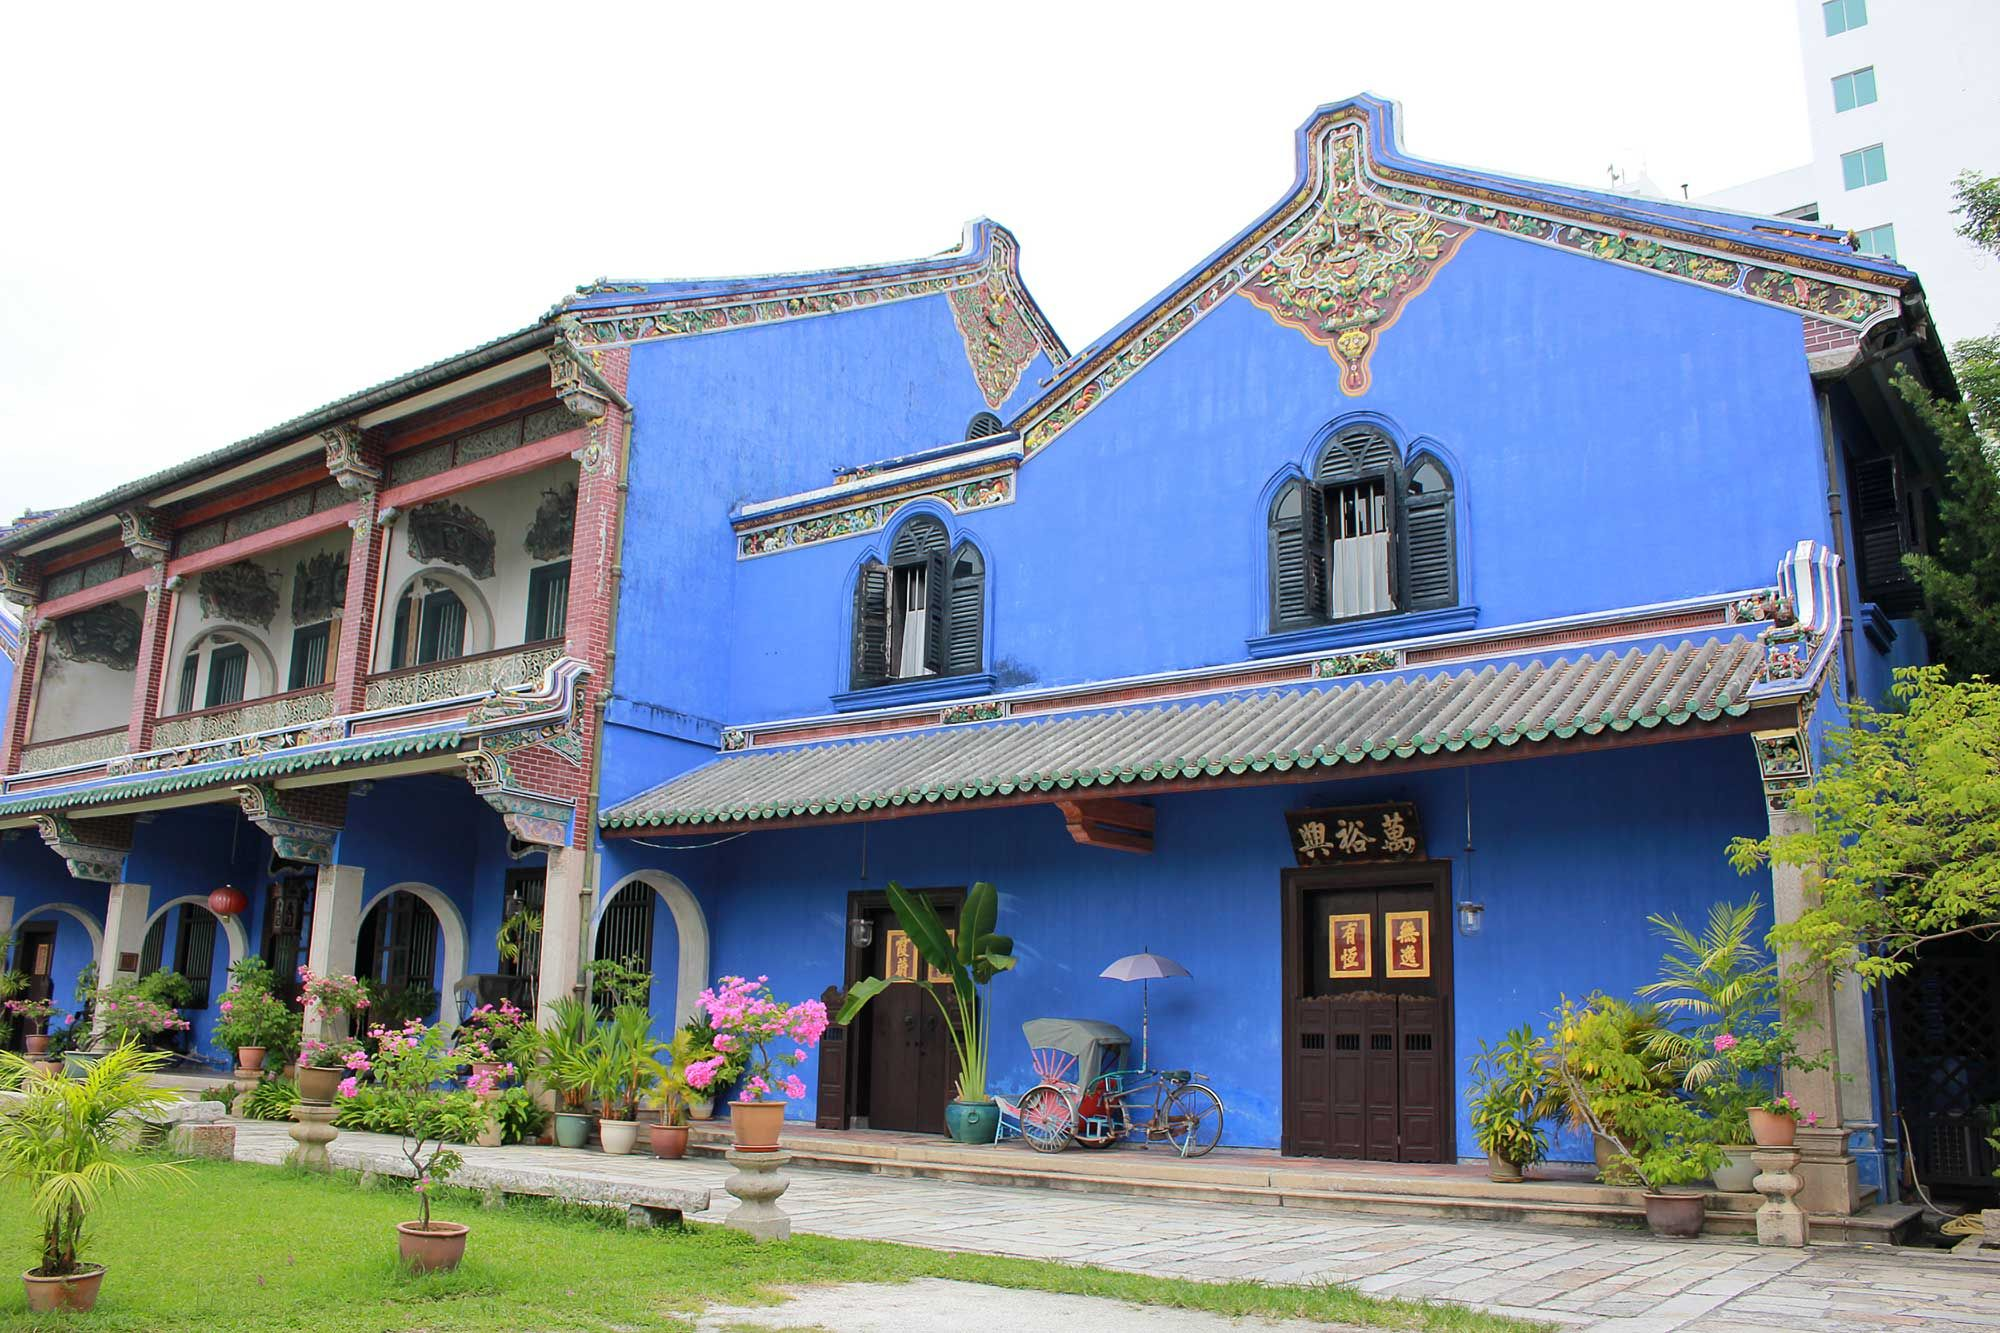 A Story of Wives and Fengshui behind this Blue Mansion in